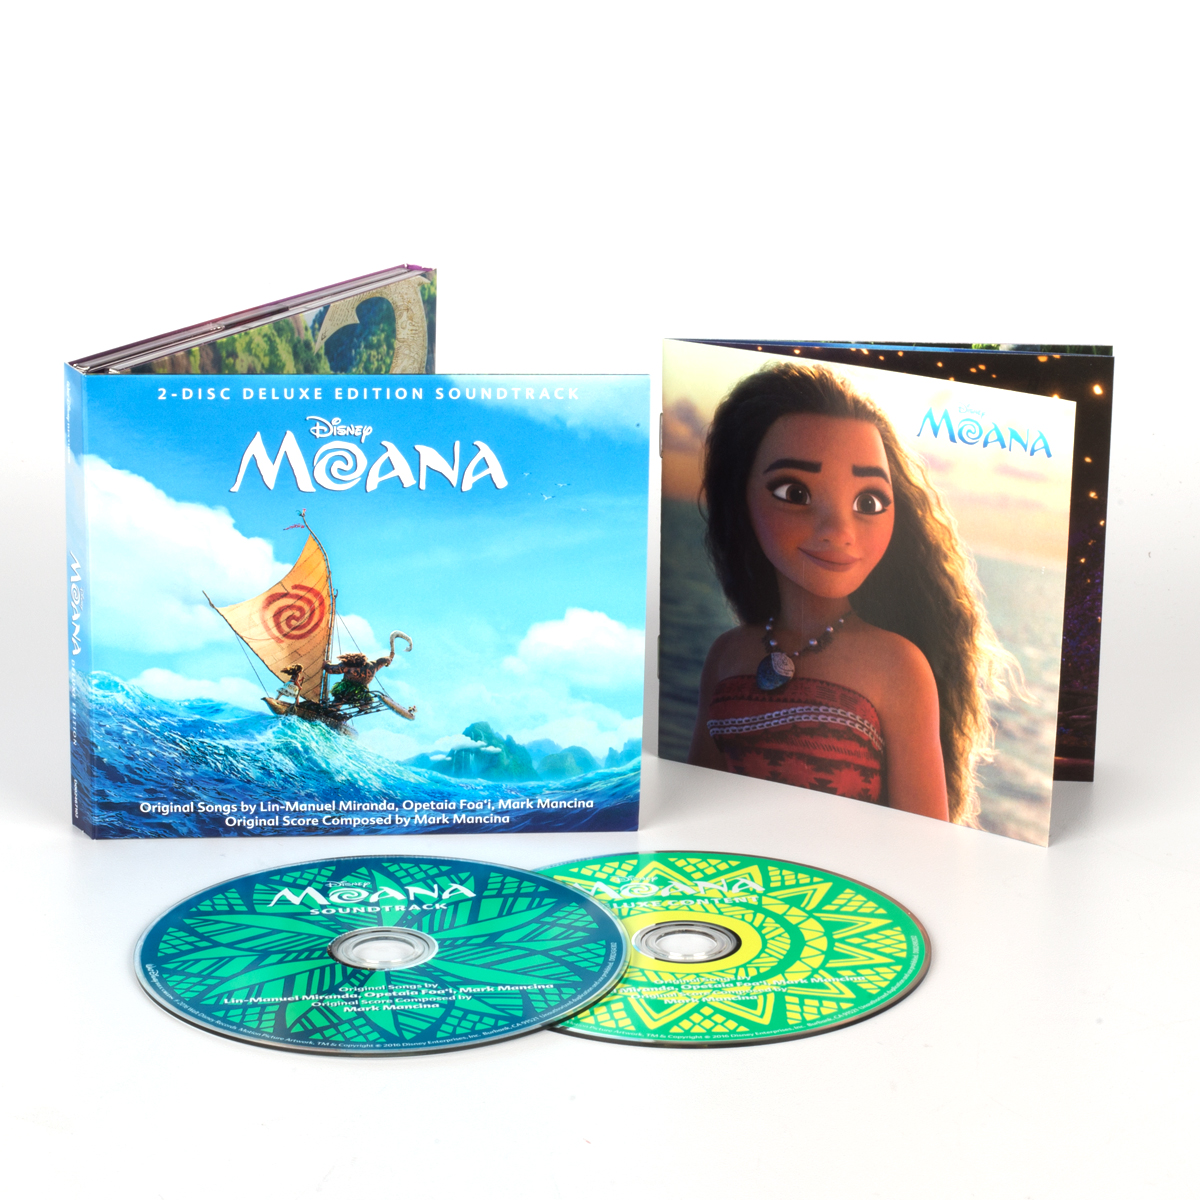 Moana Deluxe Edition Soundtrack and Lithograph | Shop the